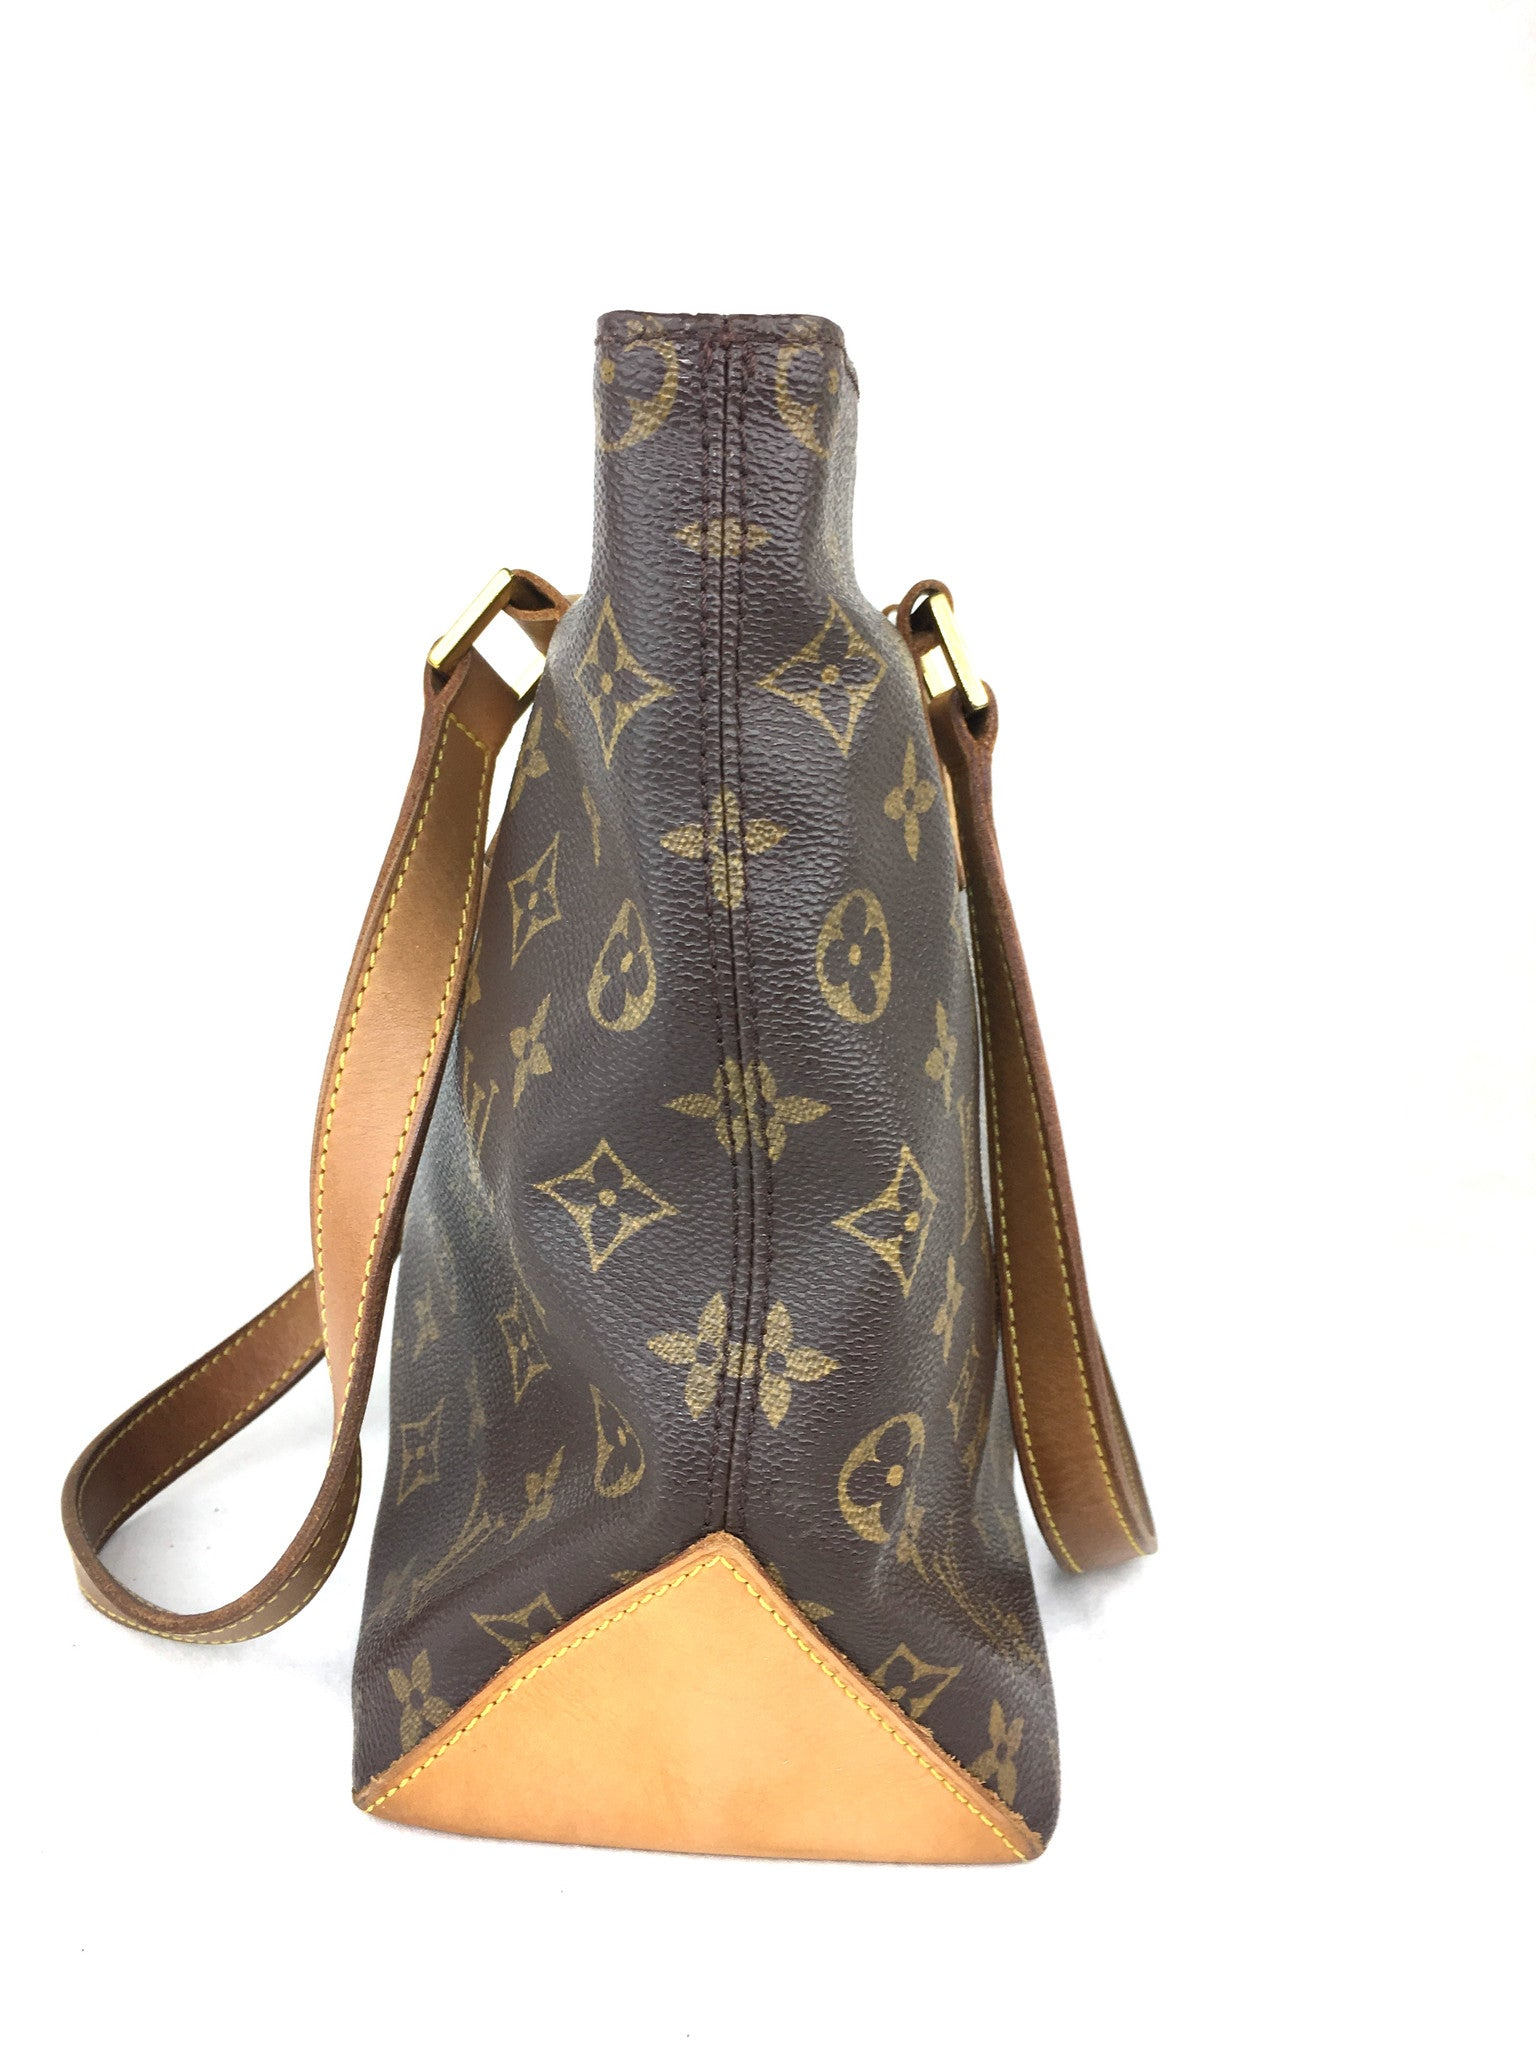 LOUIS VUITTON  Monogram Cabas PM Bag